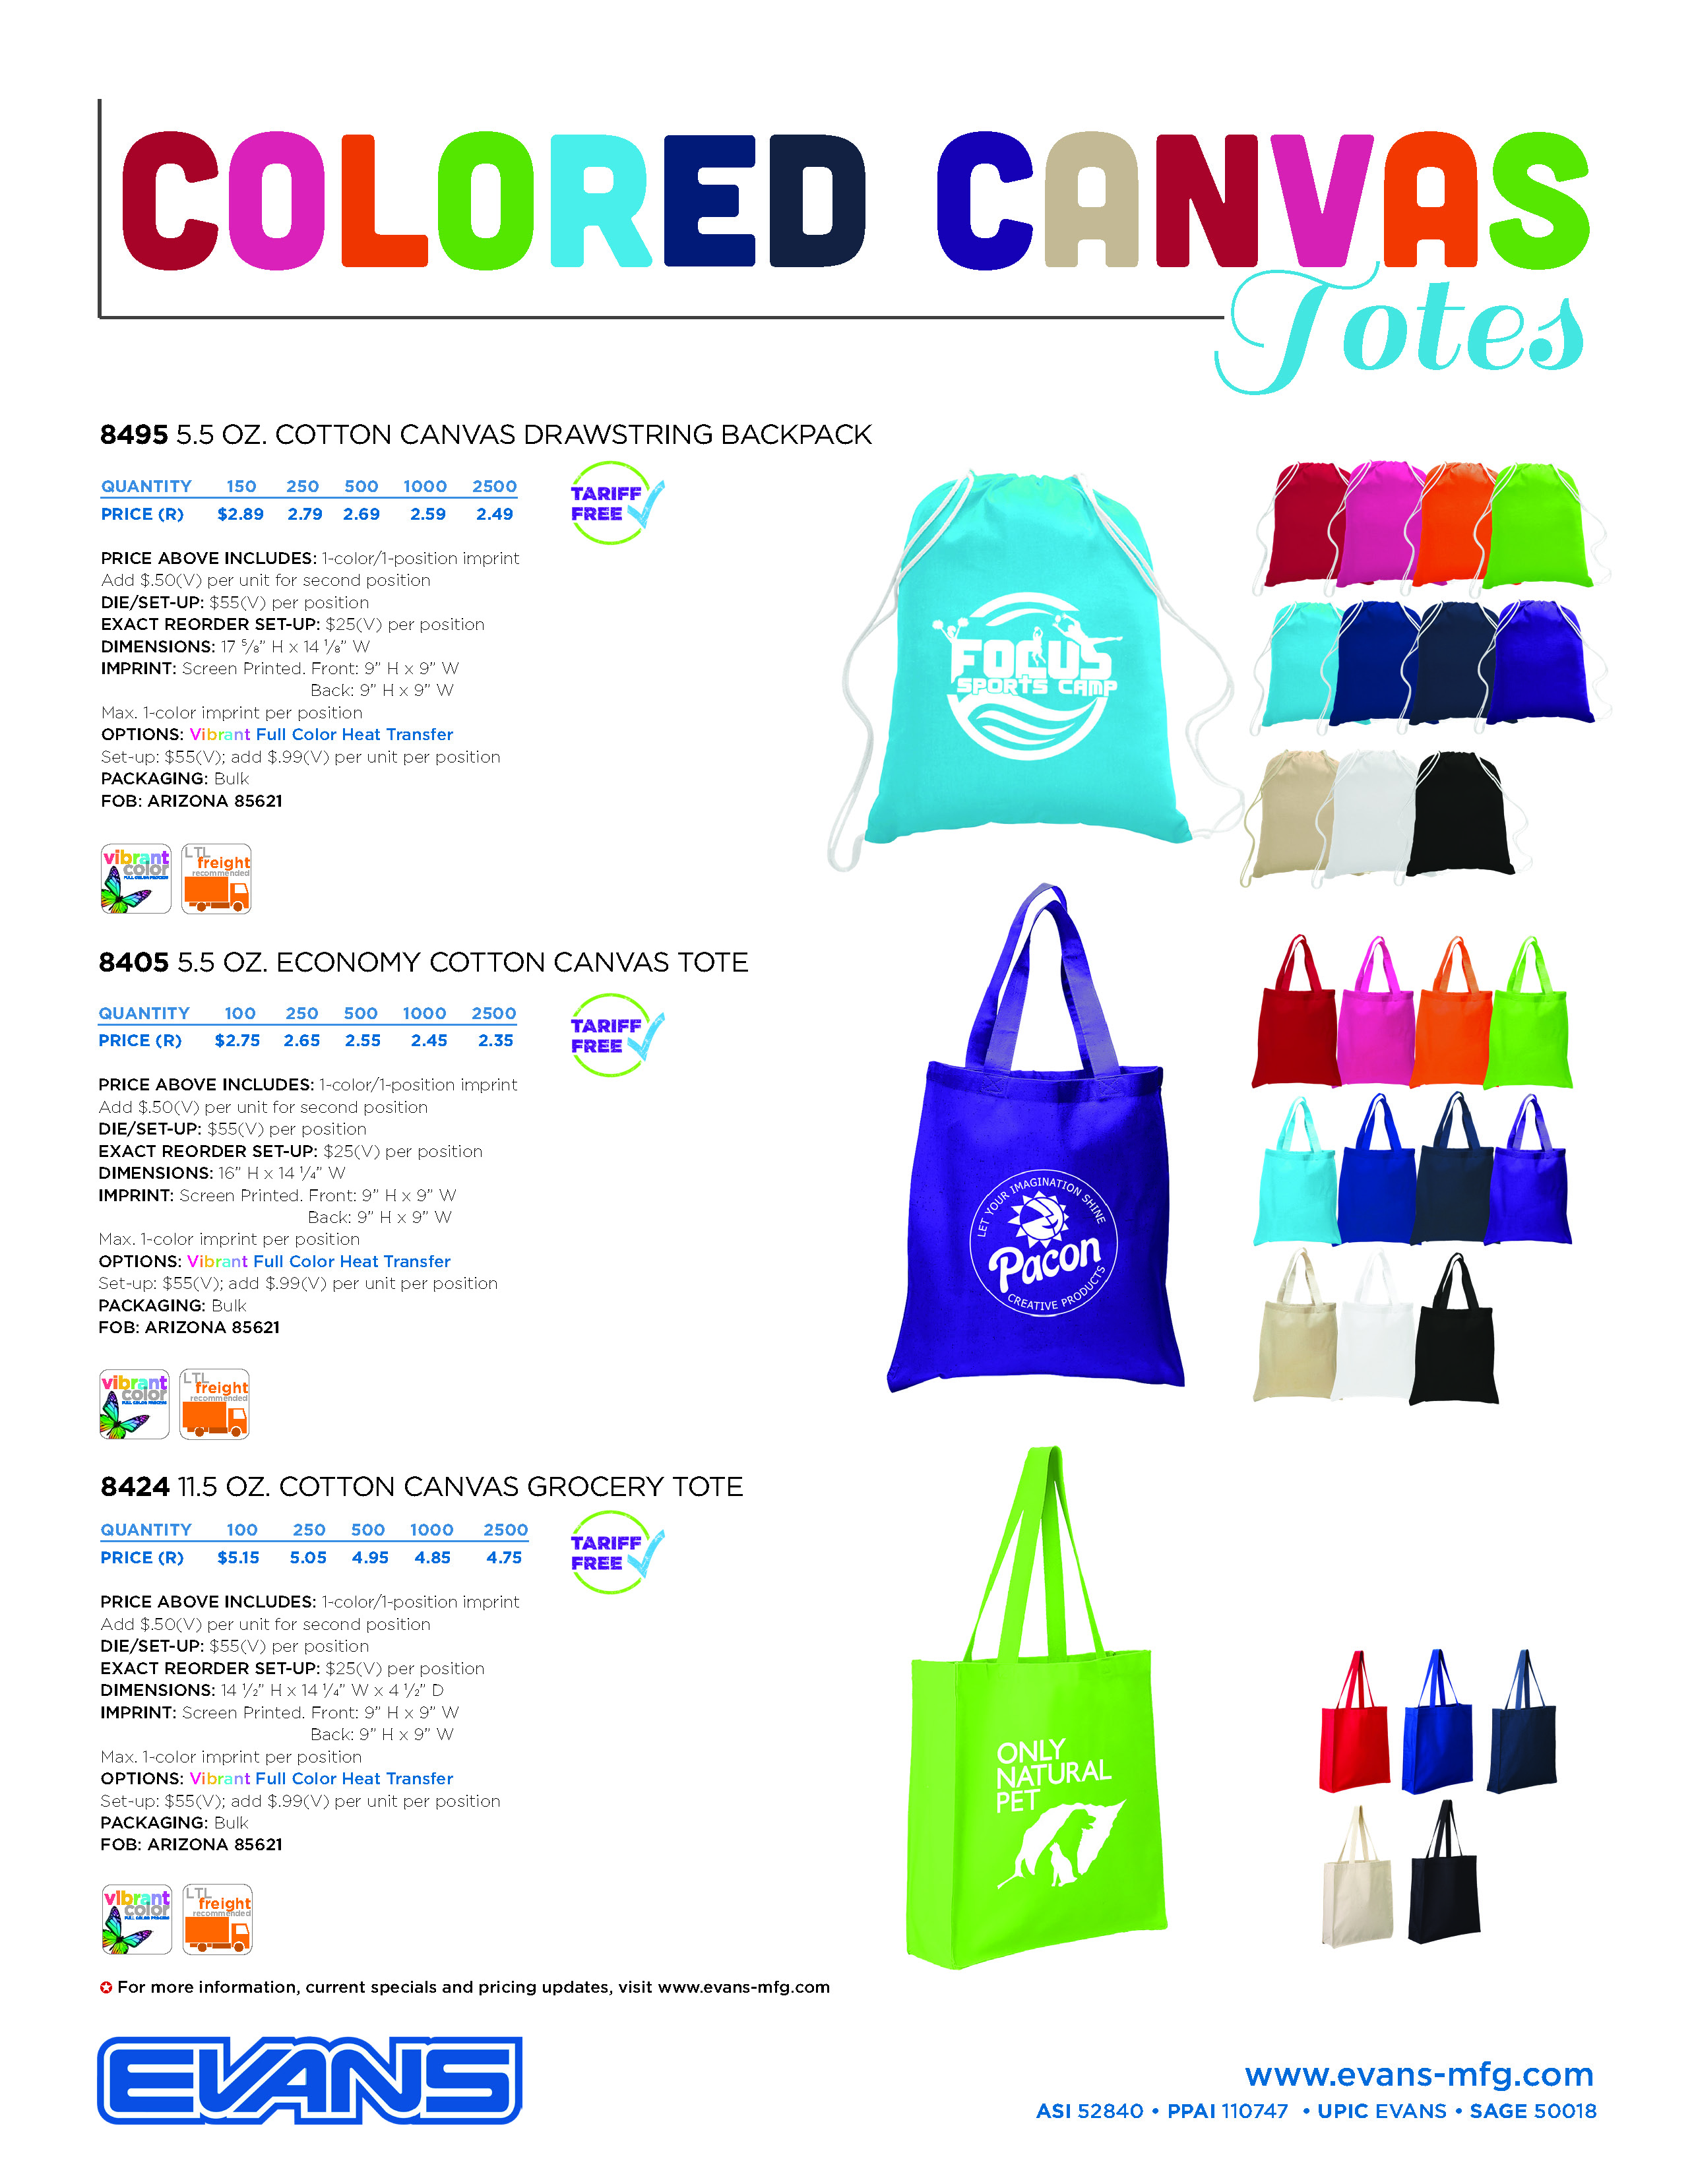 Colored Canvas Totes